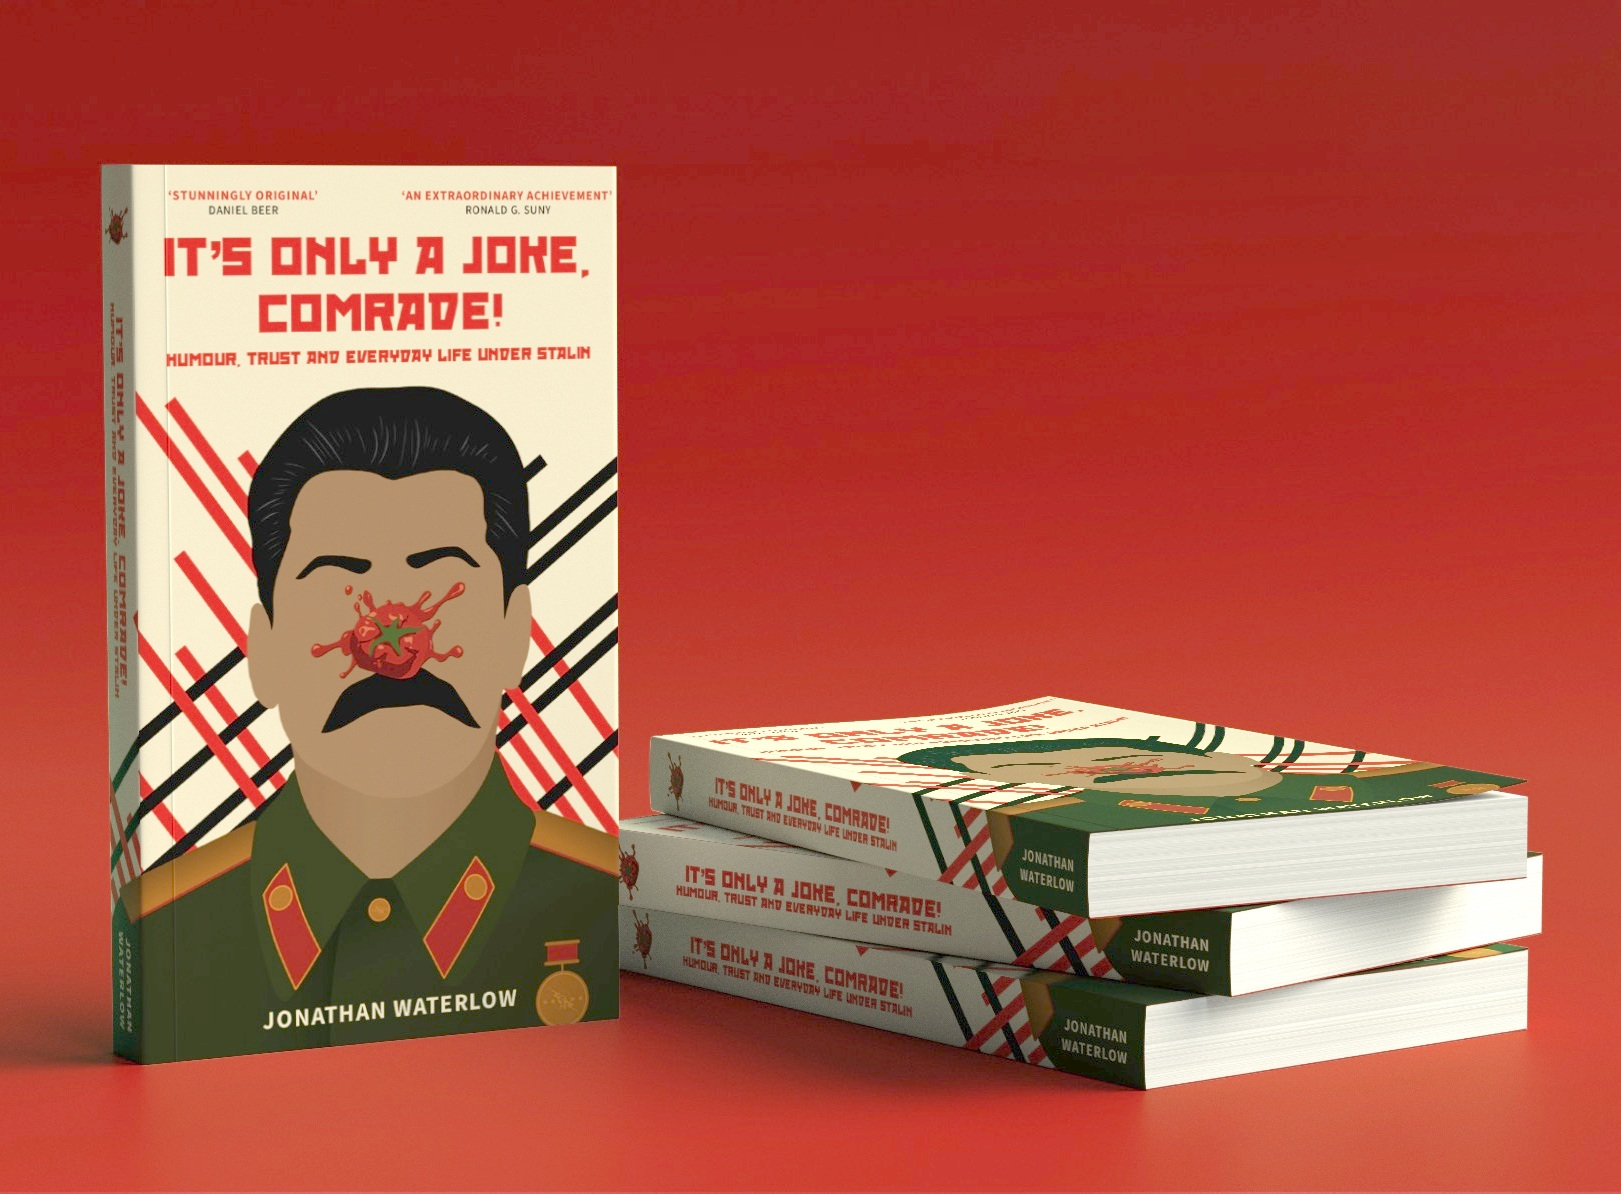 It's Only A Joke, Comrade! - An Amazon Bestseller in Russian History, It's Only a Joke, Comrade! uncovers the secret world of political jokes under Stalin's dictatorship.